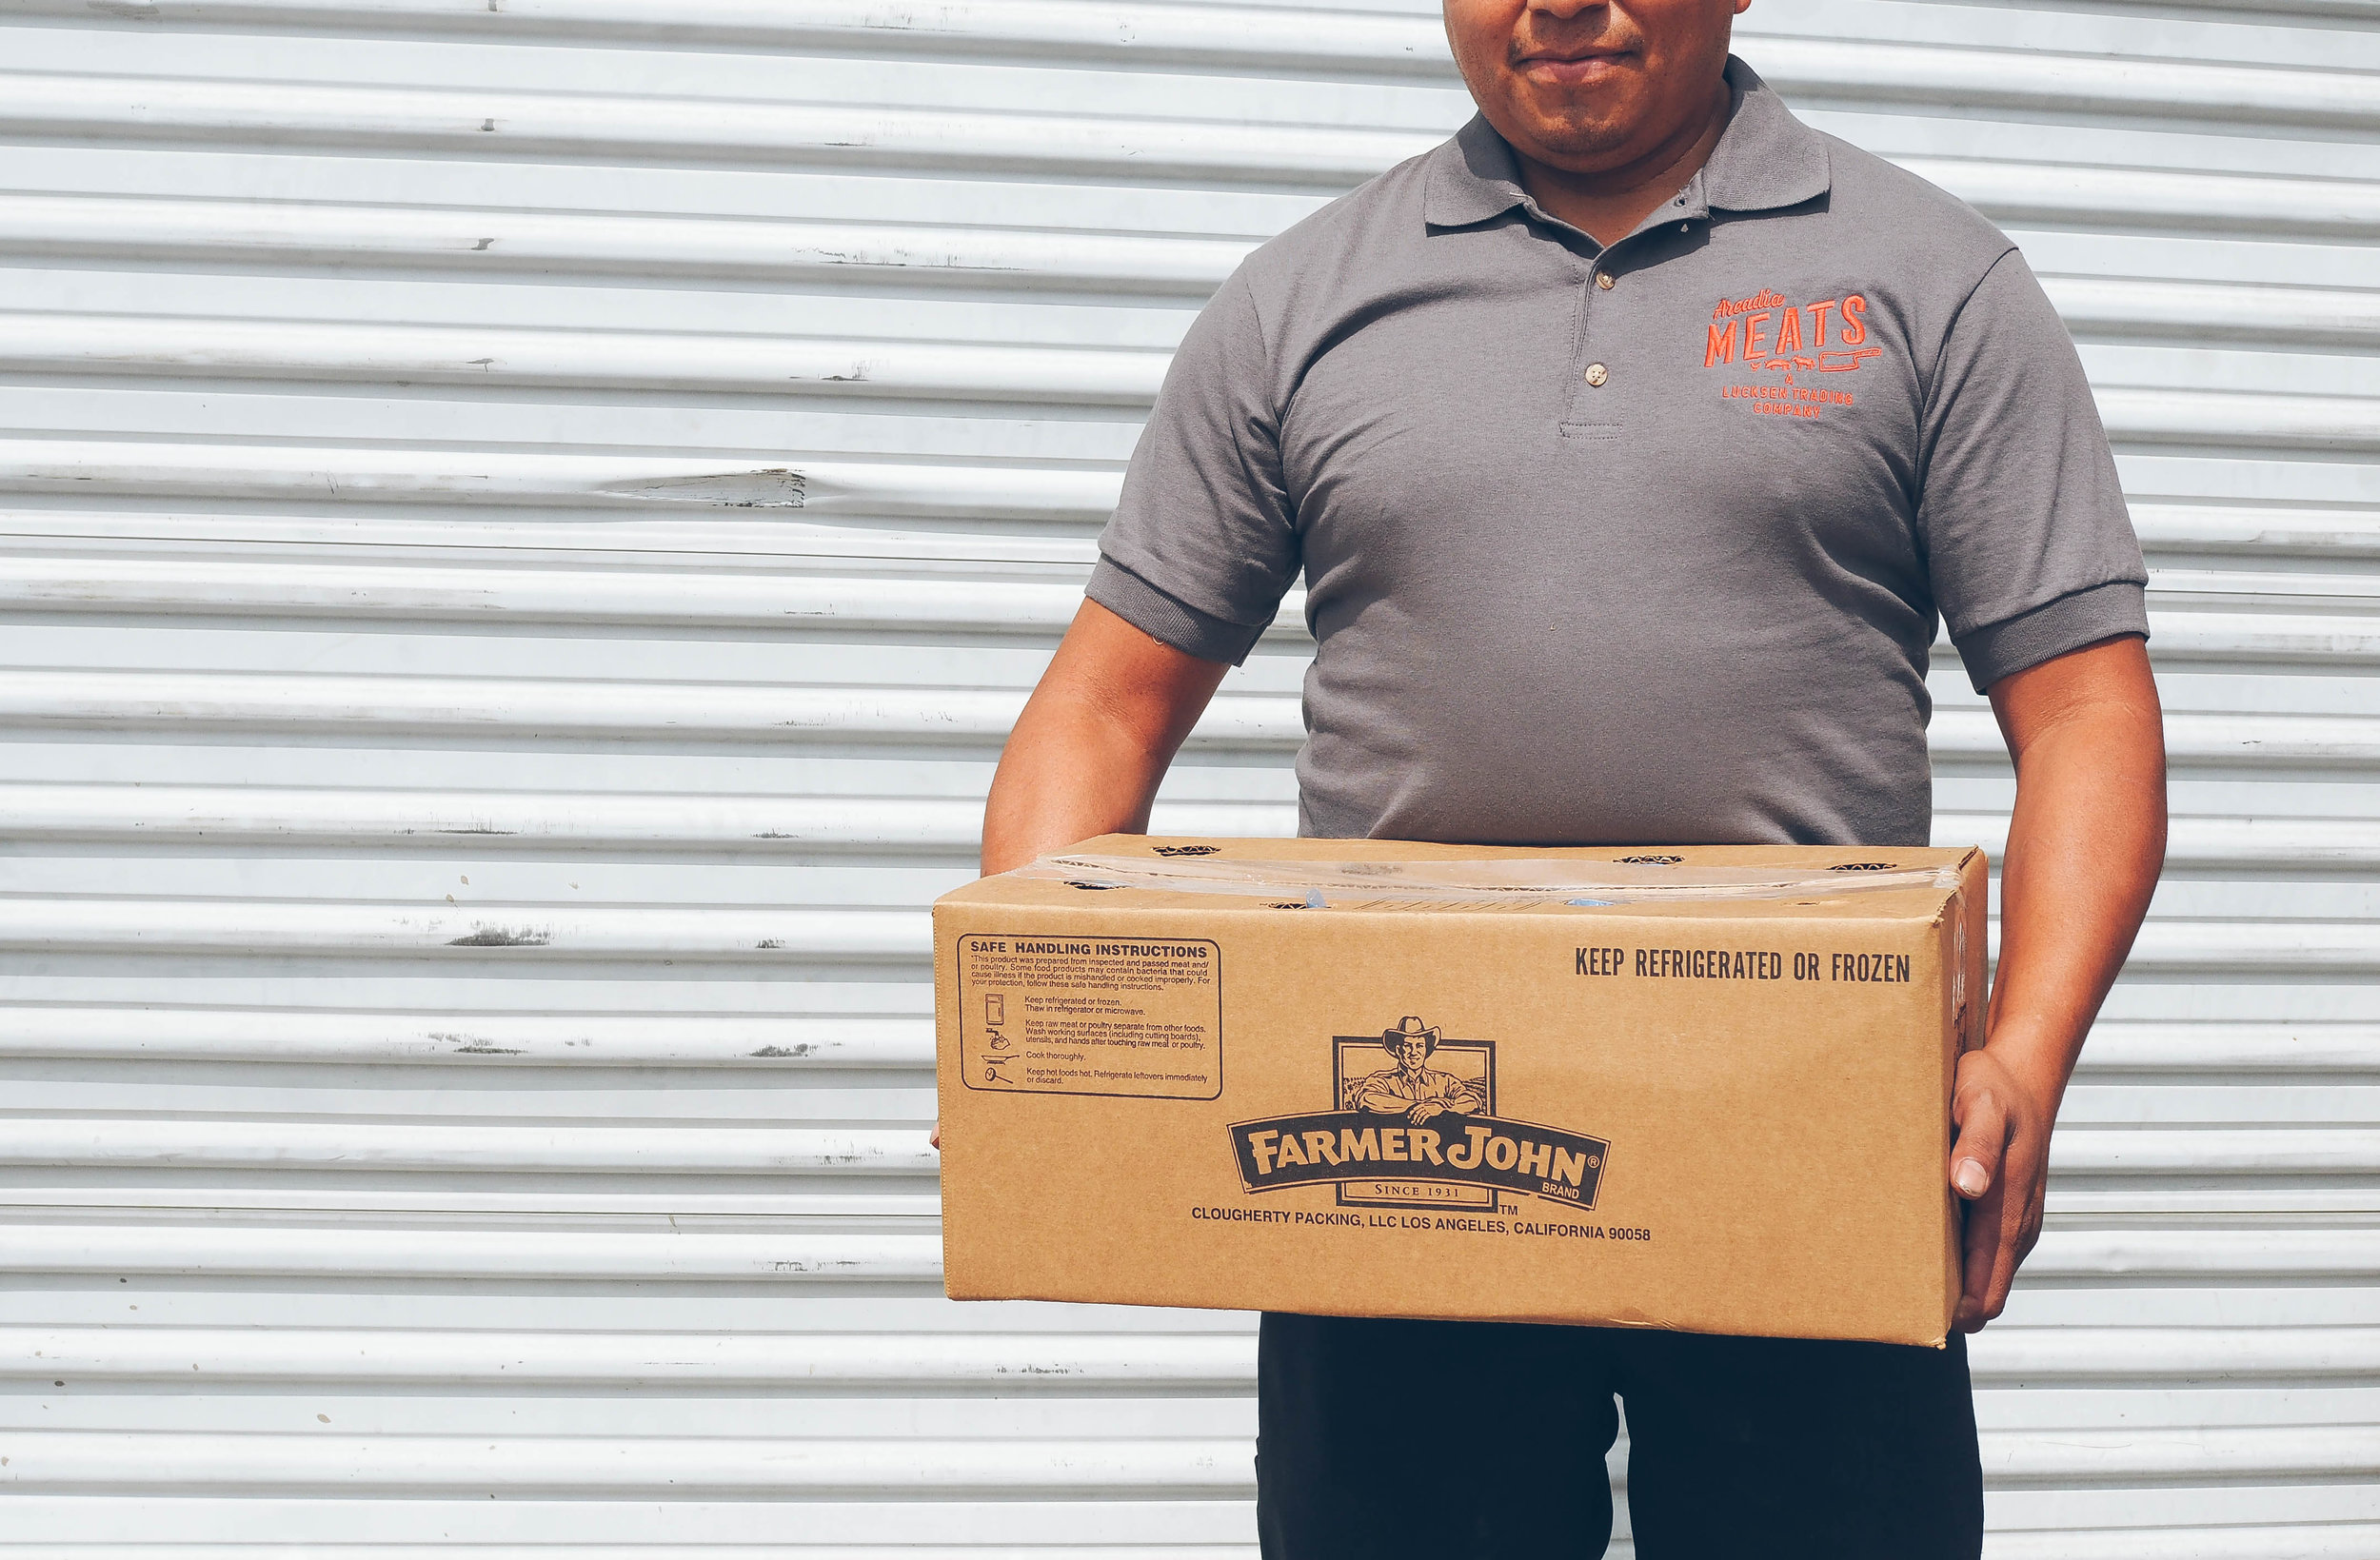 Honest Pricing - Arcadia Meats value honest pricing that will  lead to selling more and better products to our  loyal customer base. Happy customer is our  main priority.